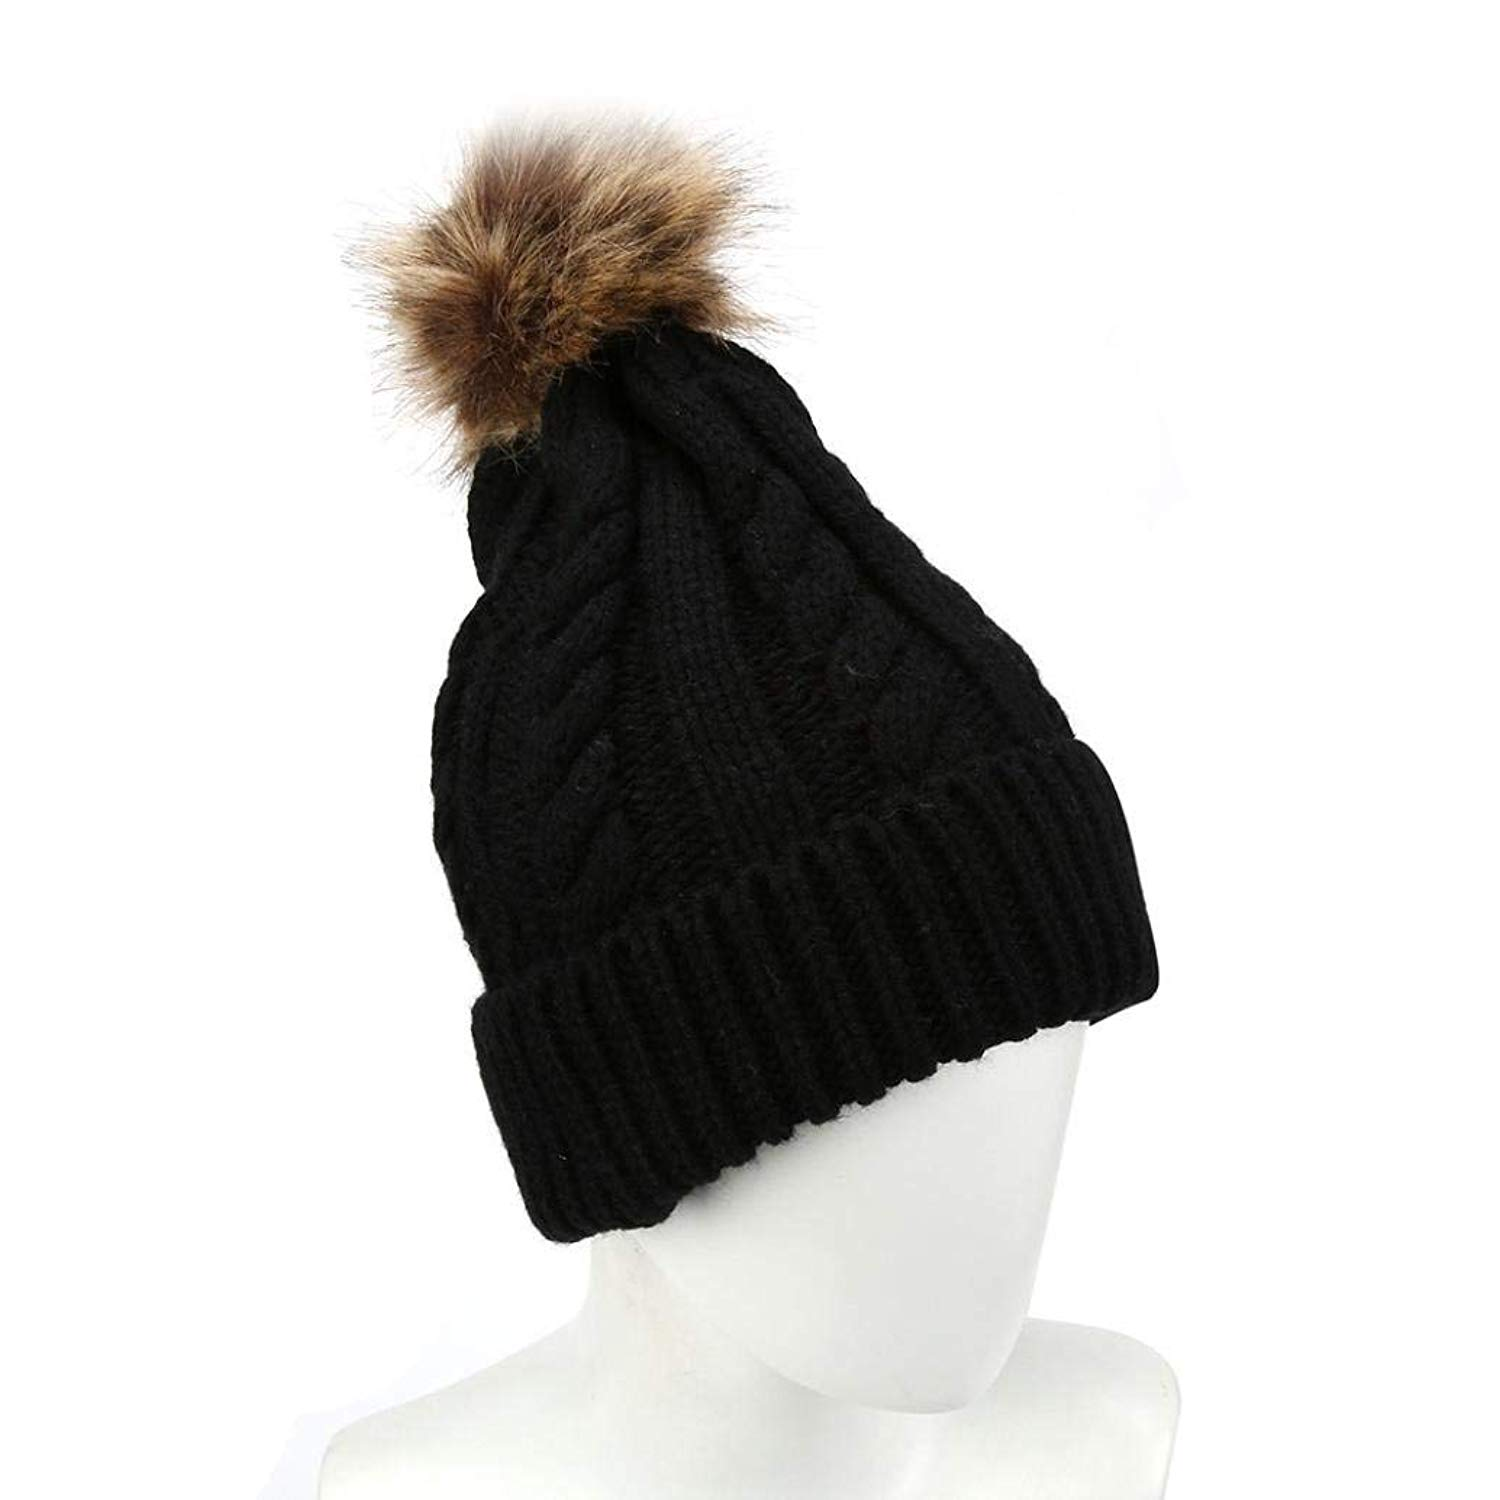 aabe8ea765f Get Quotations · Oksale® Women Girls Winter Pom Pom Crochet Knitted Wool  Skull Cap Beanie Hat